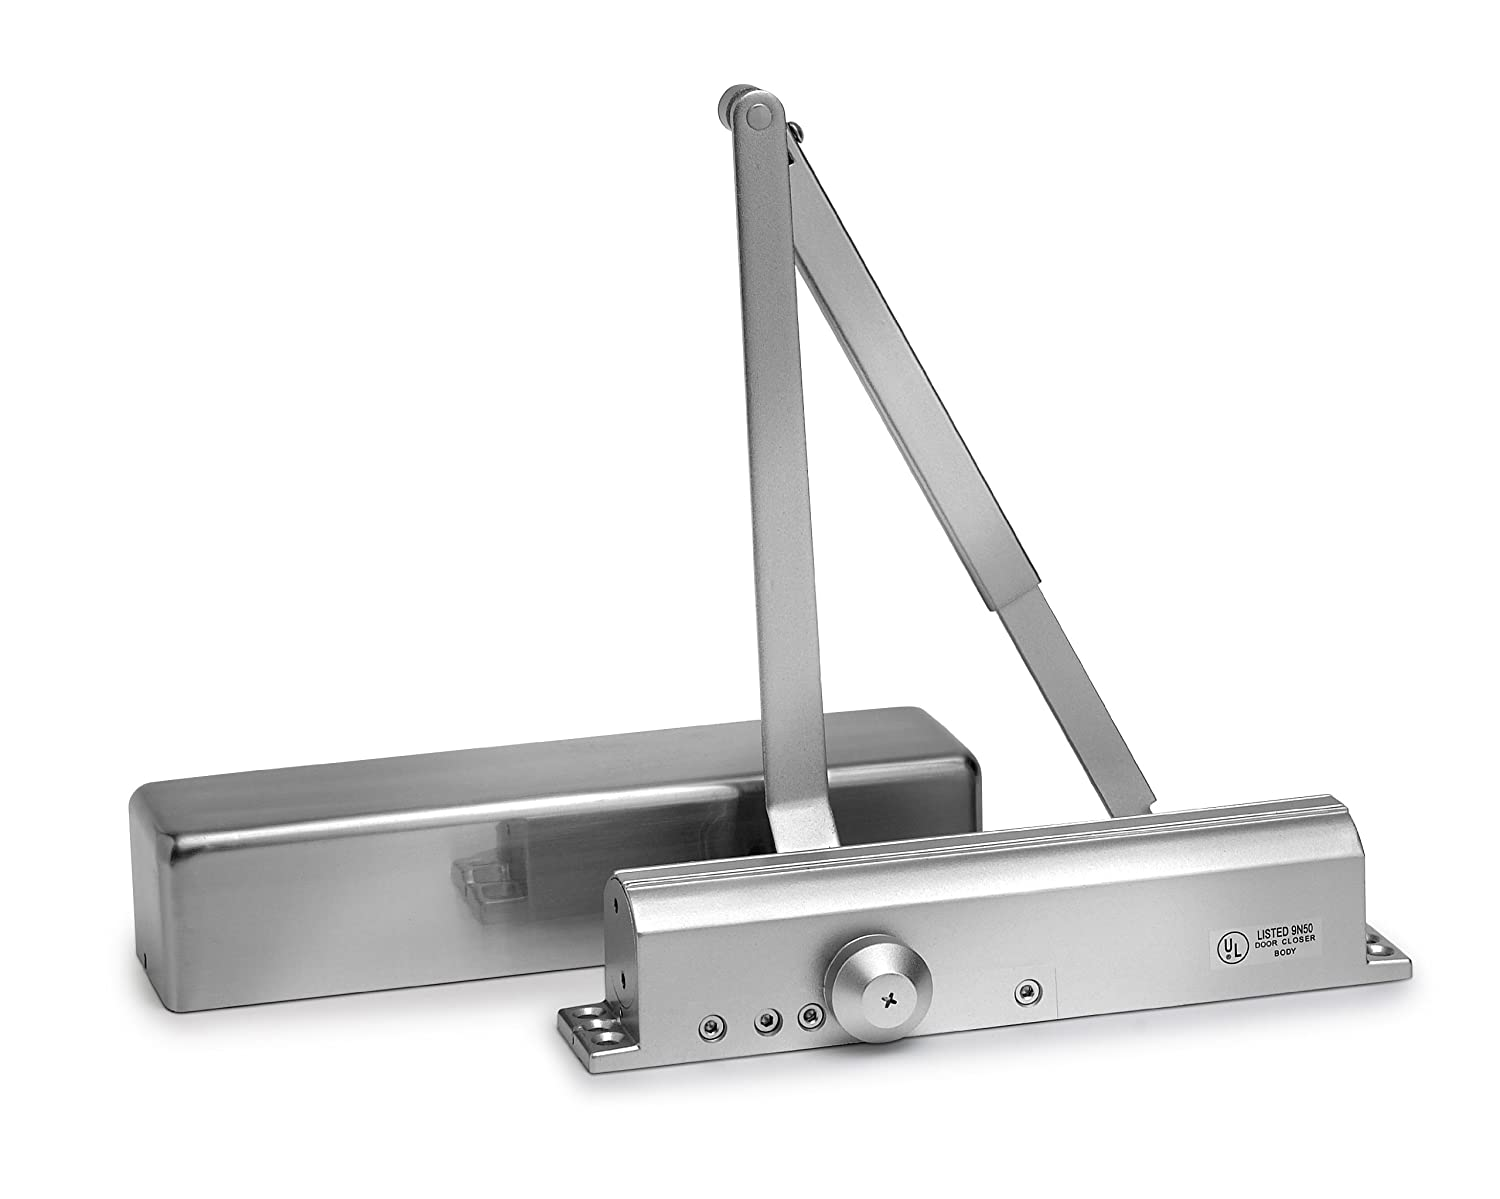 Independence2 i.2-C3016 Powder Coated Aluminum Grade 1 Commercial Grade Door Closer with Adjustable Spring Power, 1-6 Size by i.2  B00G82BTEK